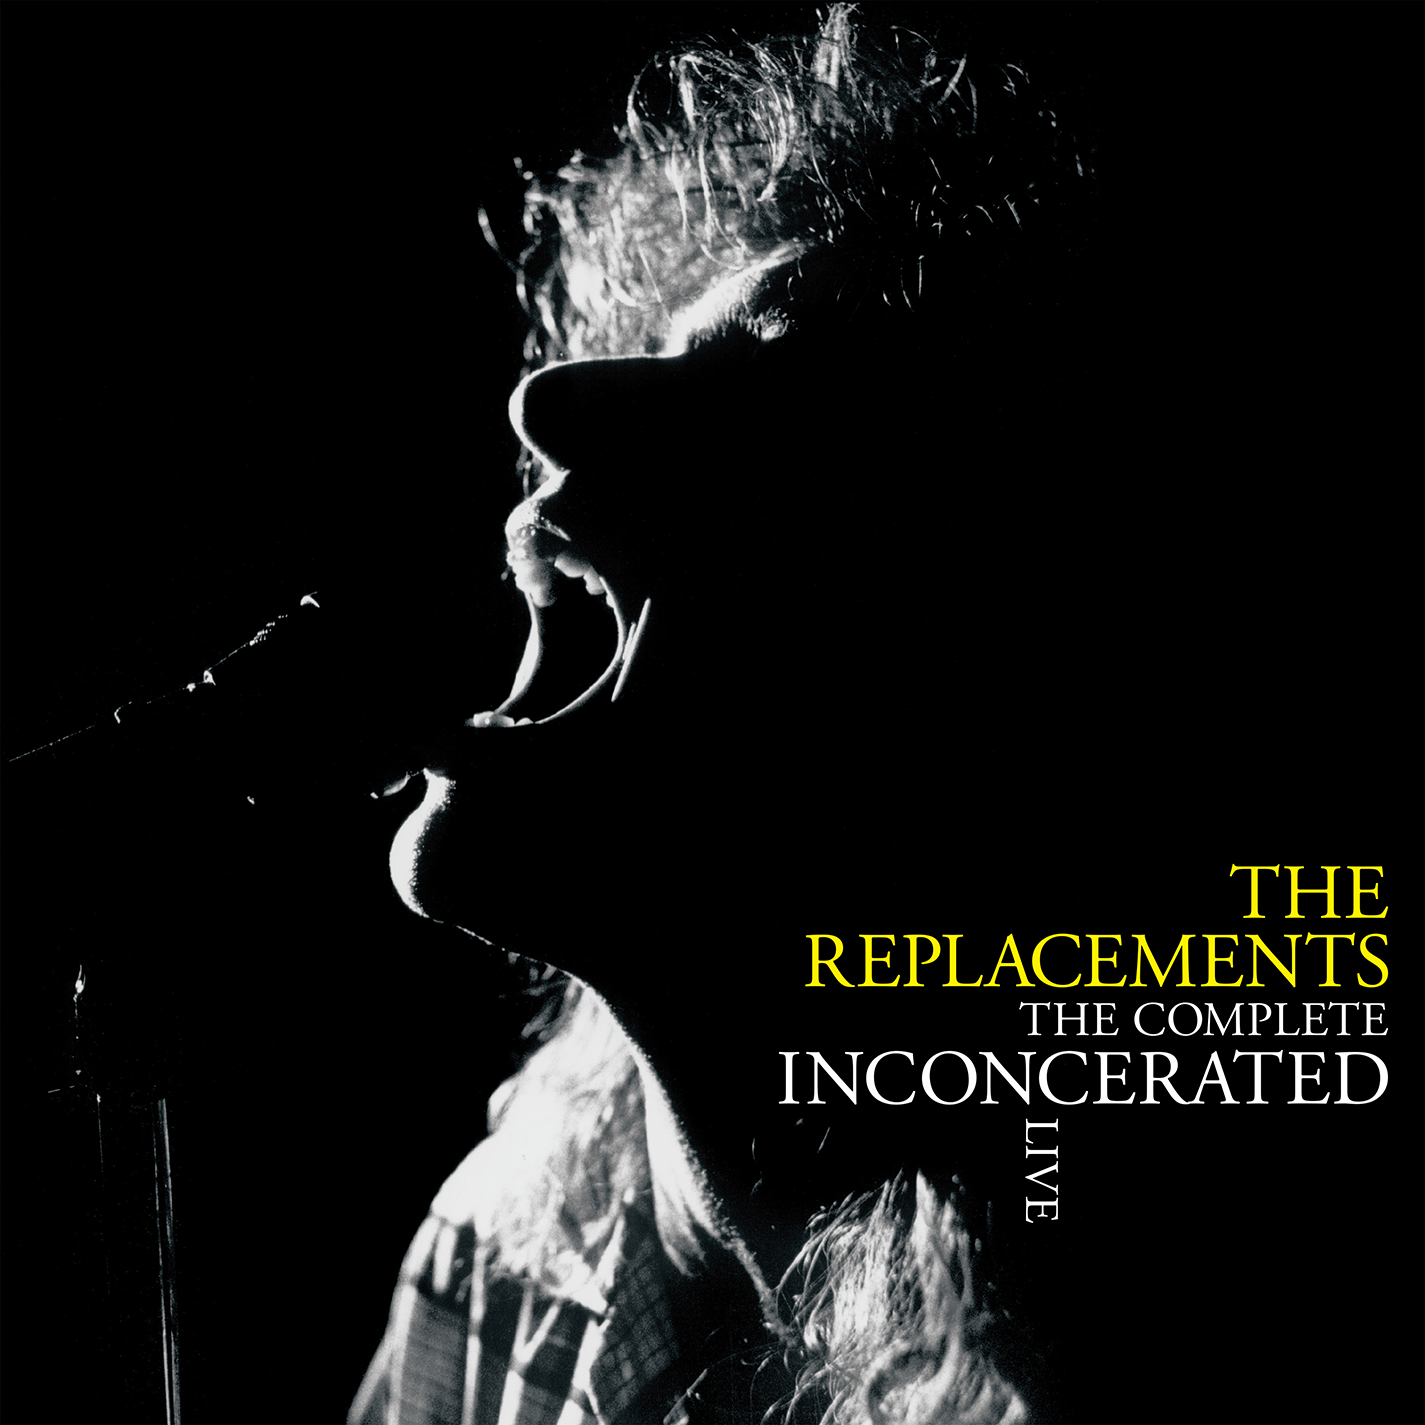 The Replacements - The Complete Inconcerated Live [RSD Drops Sep 2020]